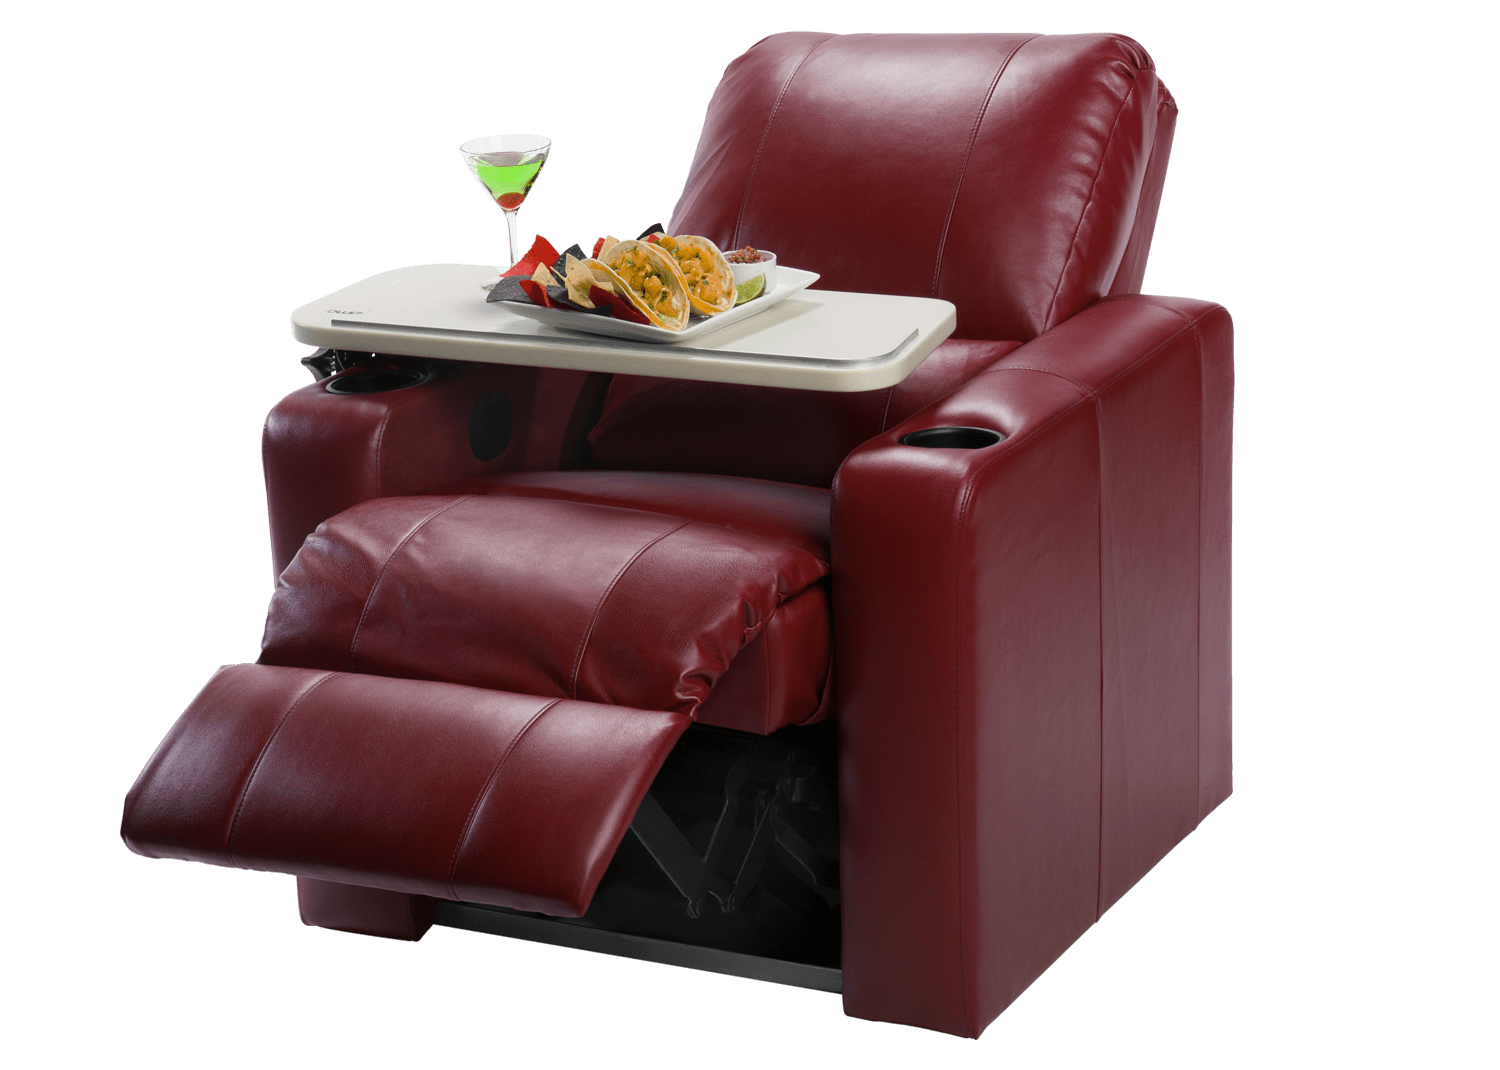 2 seat theater chairs lafuma zero gravity chair parts recliner seating